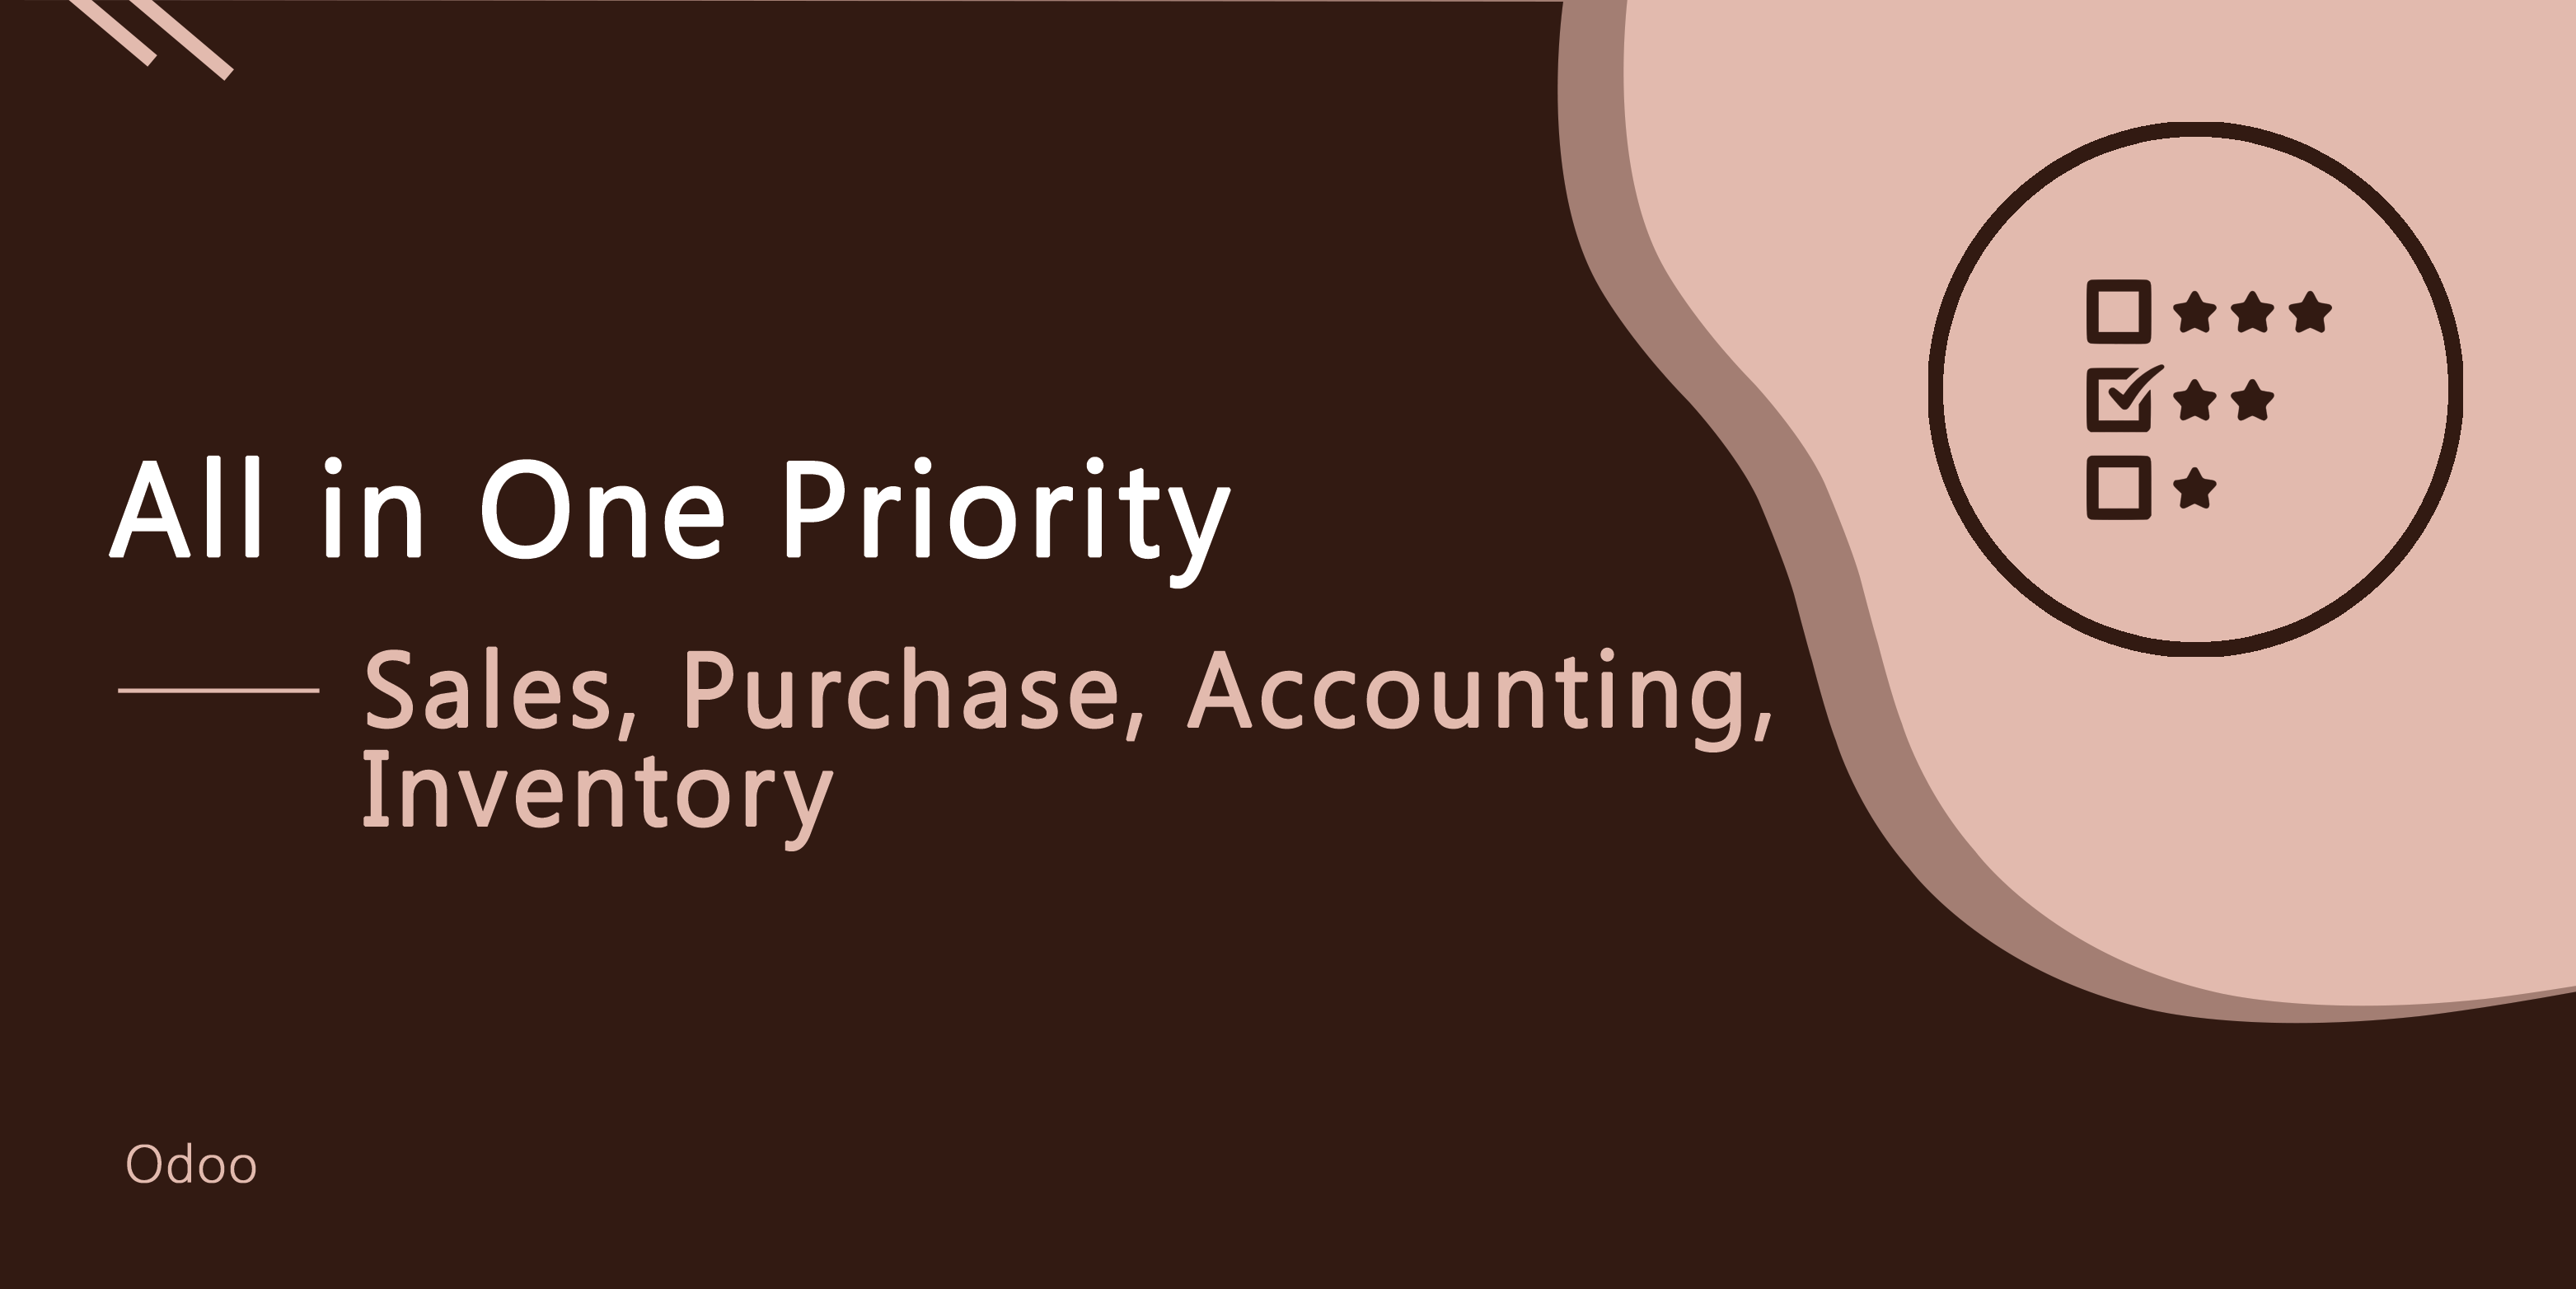 All in One Priority - Sale, Purchase, Account, Inventory